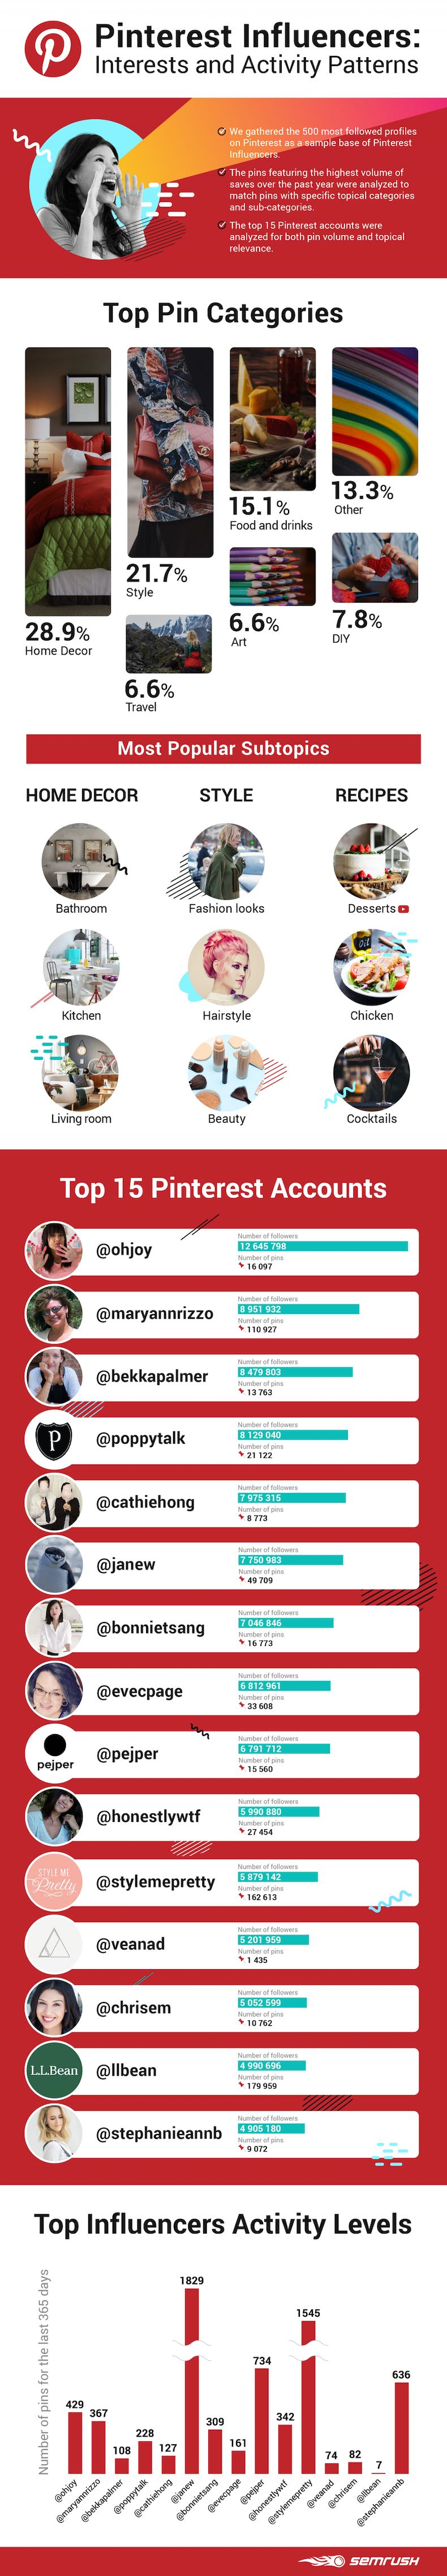 Top Influencers and Topics on Pinterest